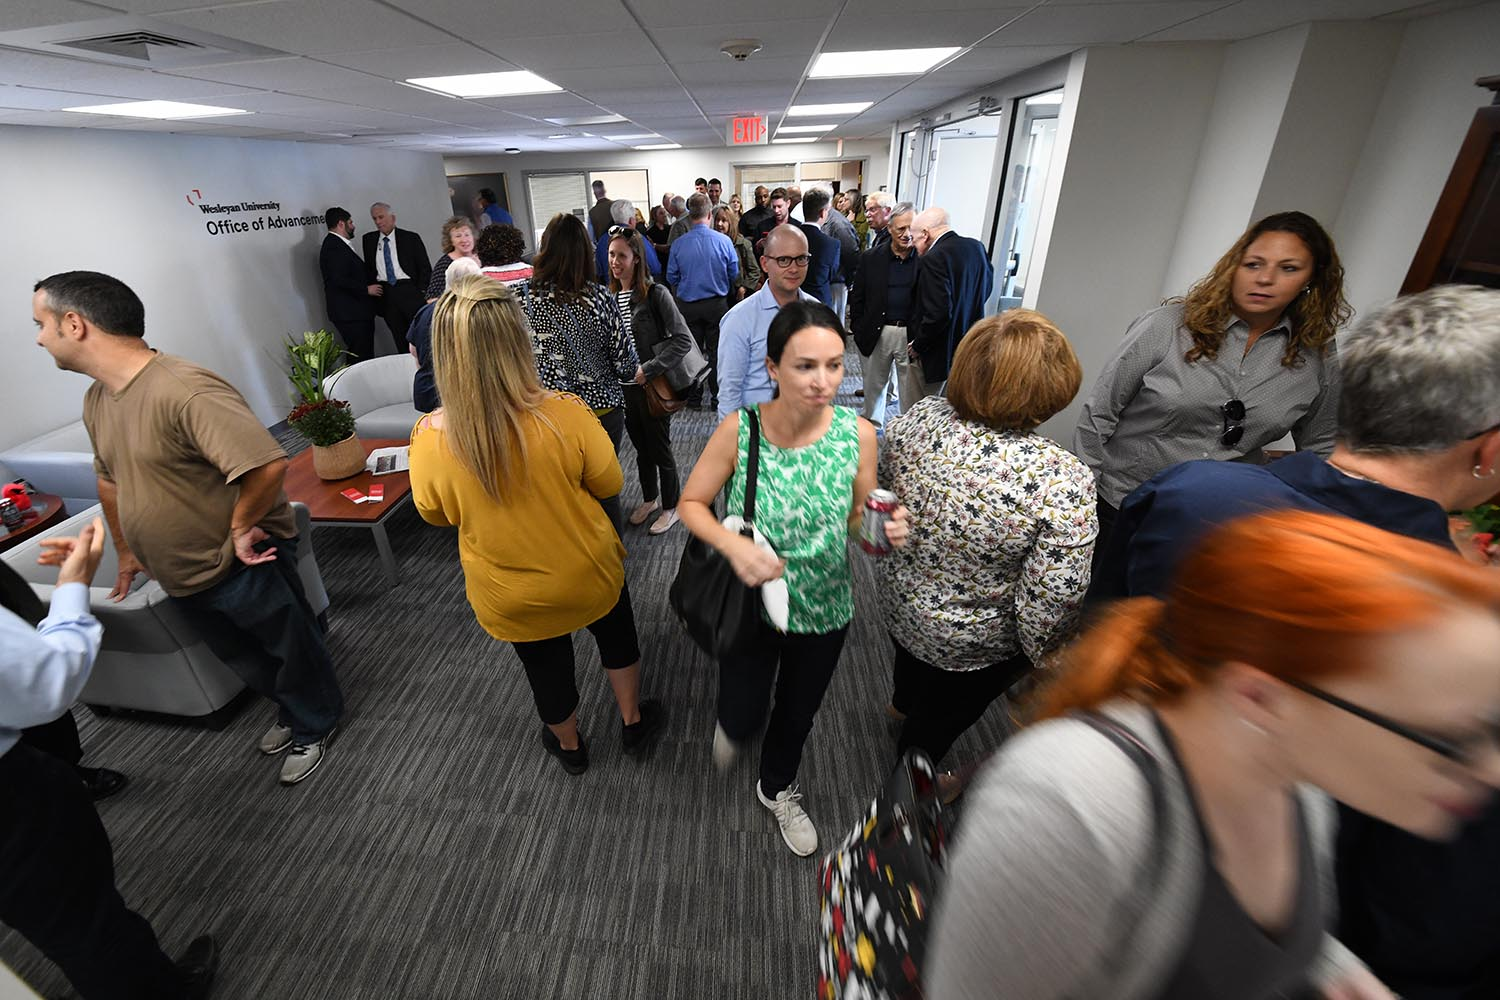 Open-house goers were treated to snacks and refreshments.